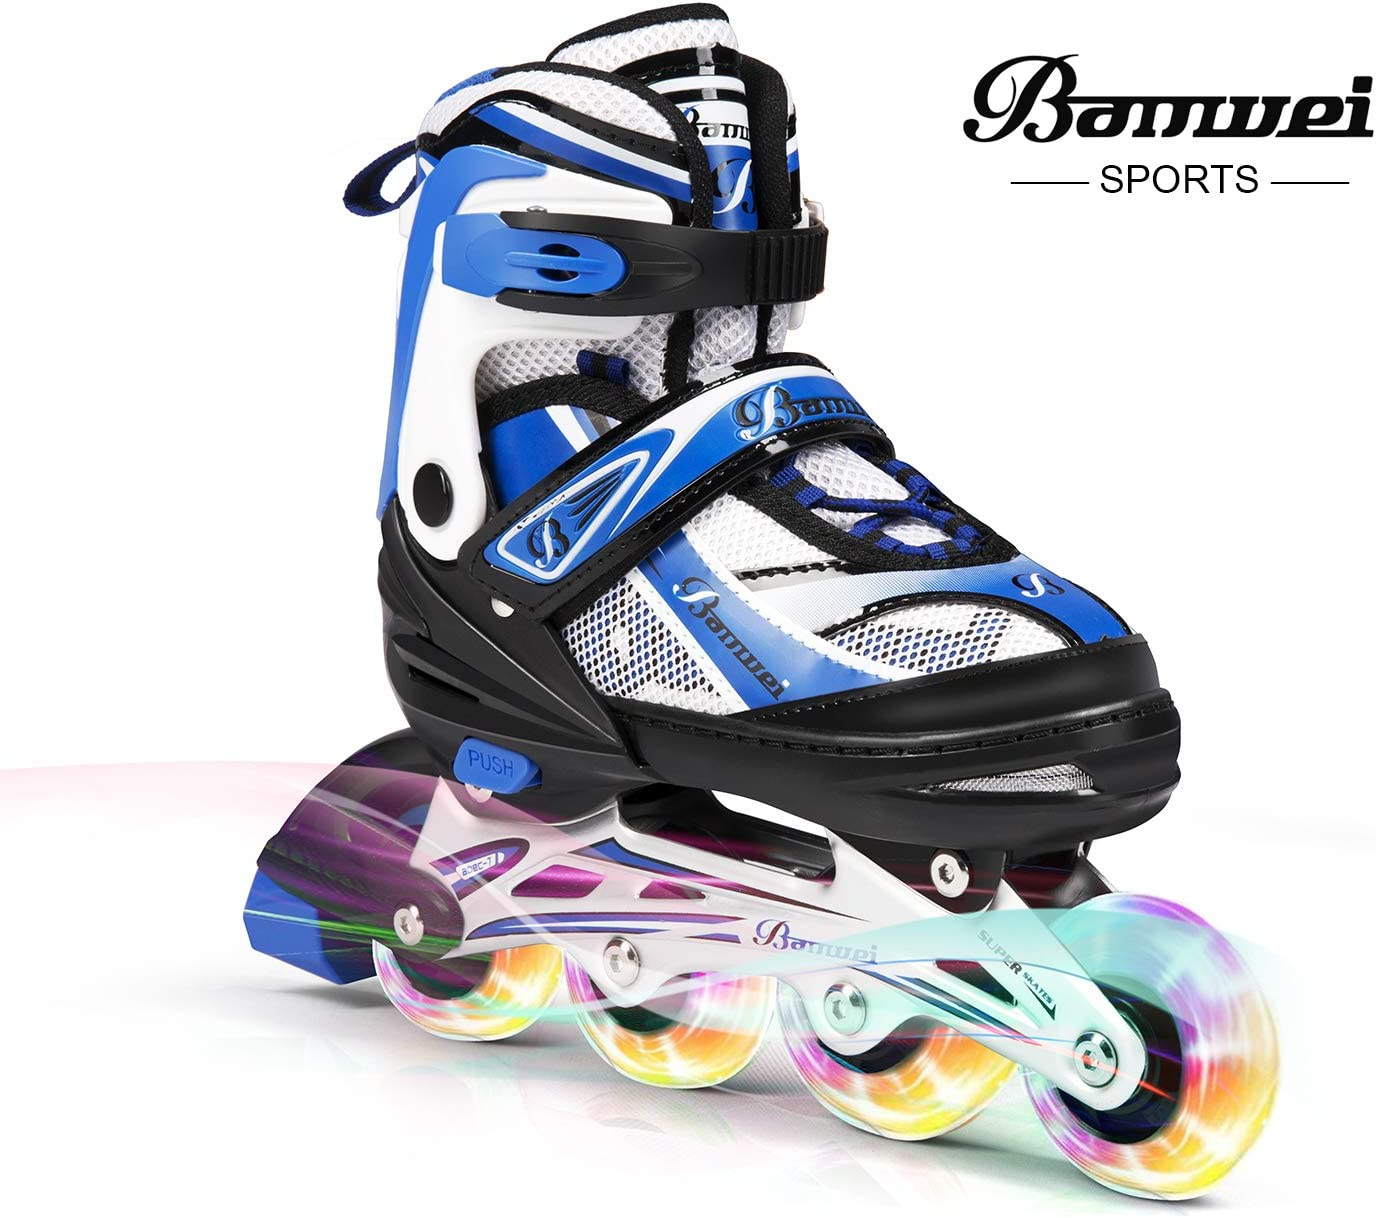 BANWEI SAM Toys Girls Adjustable Inline Skates with Light up Wheels – Beginner Kids Rollerblades Best Gift for Birthday or Christmas